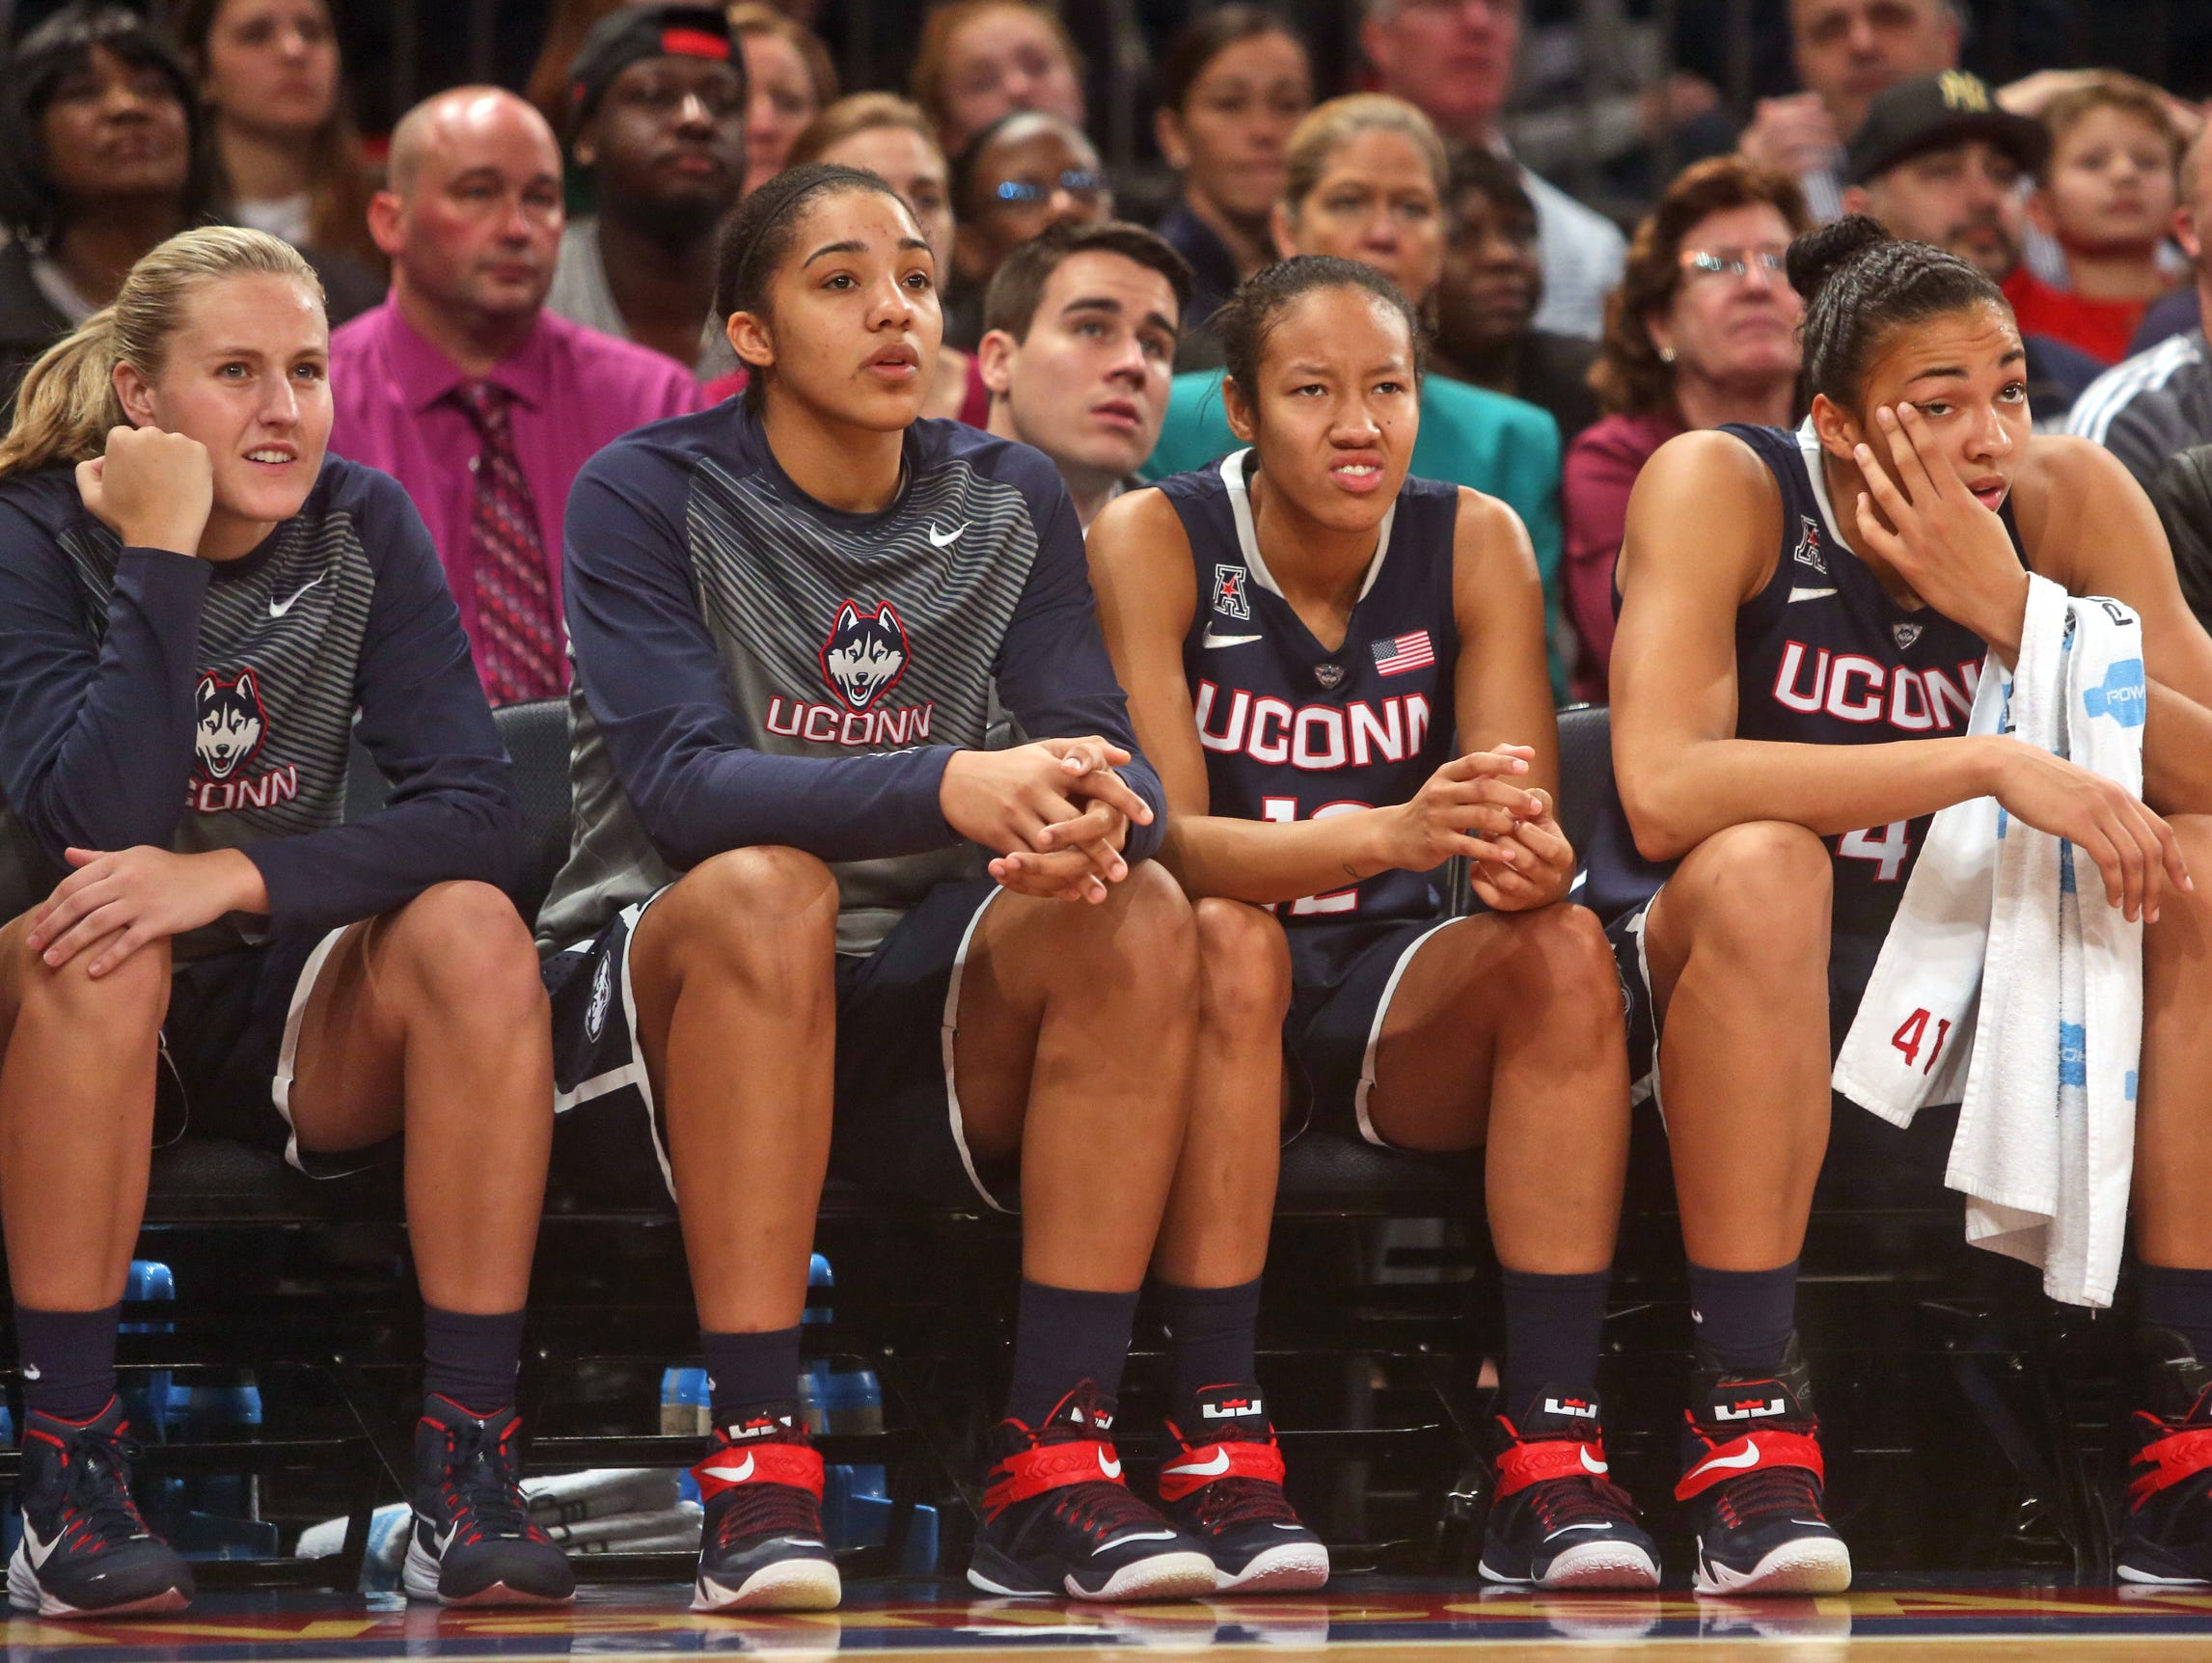 UConn's Saniya Chong, a Peekskill native, second from right, saw limited playing time during a game against St. John's during the Maggie Dixon Classic women's basketball tournament at Madison Square Garden Jan. 4, 2015. UConn defeated St. John's 70-54.